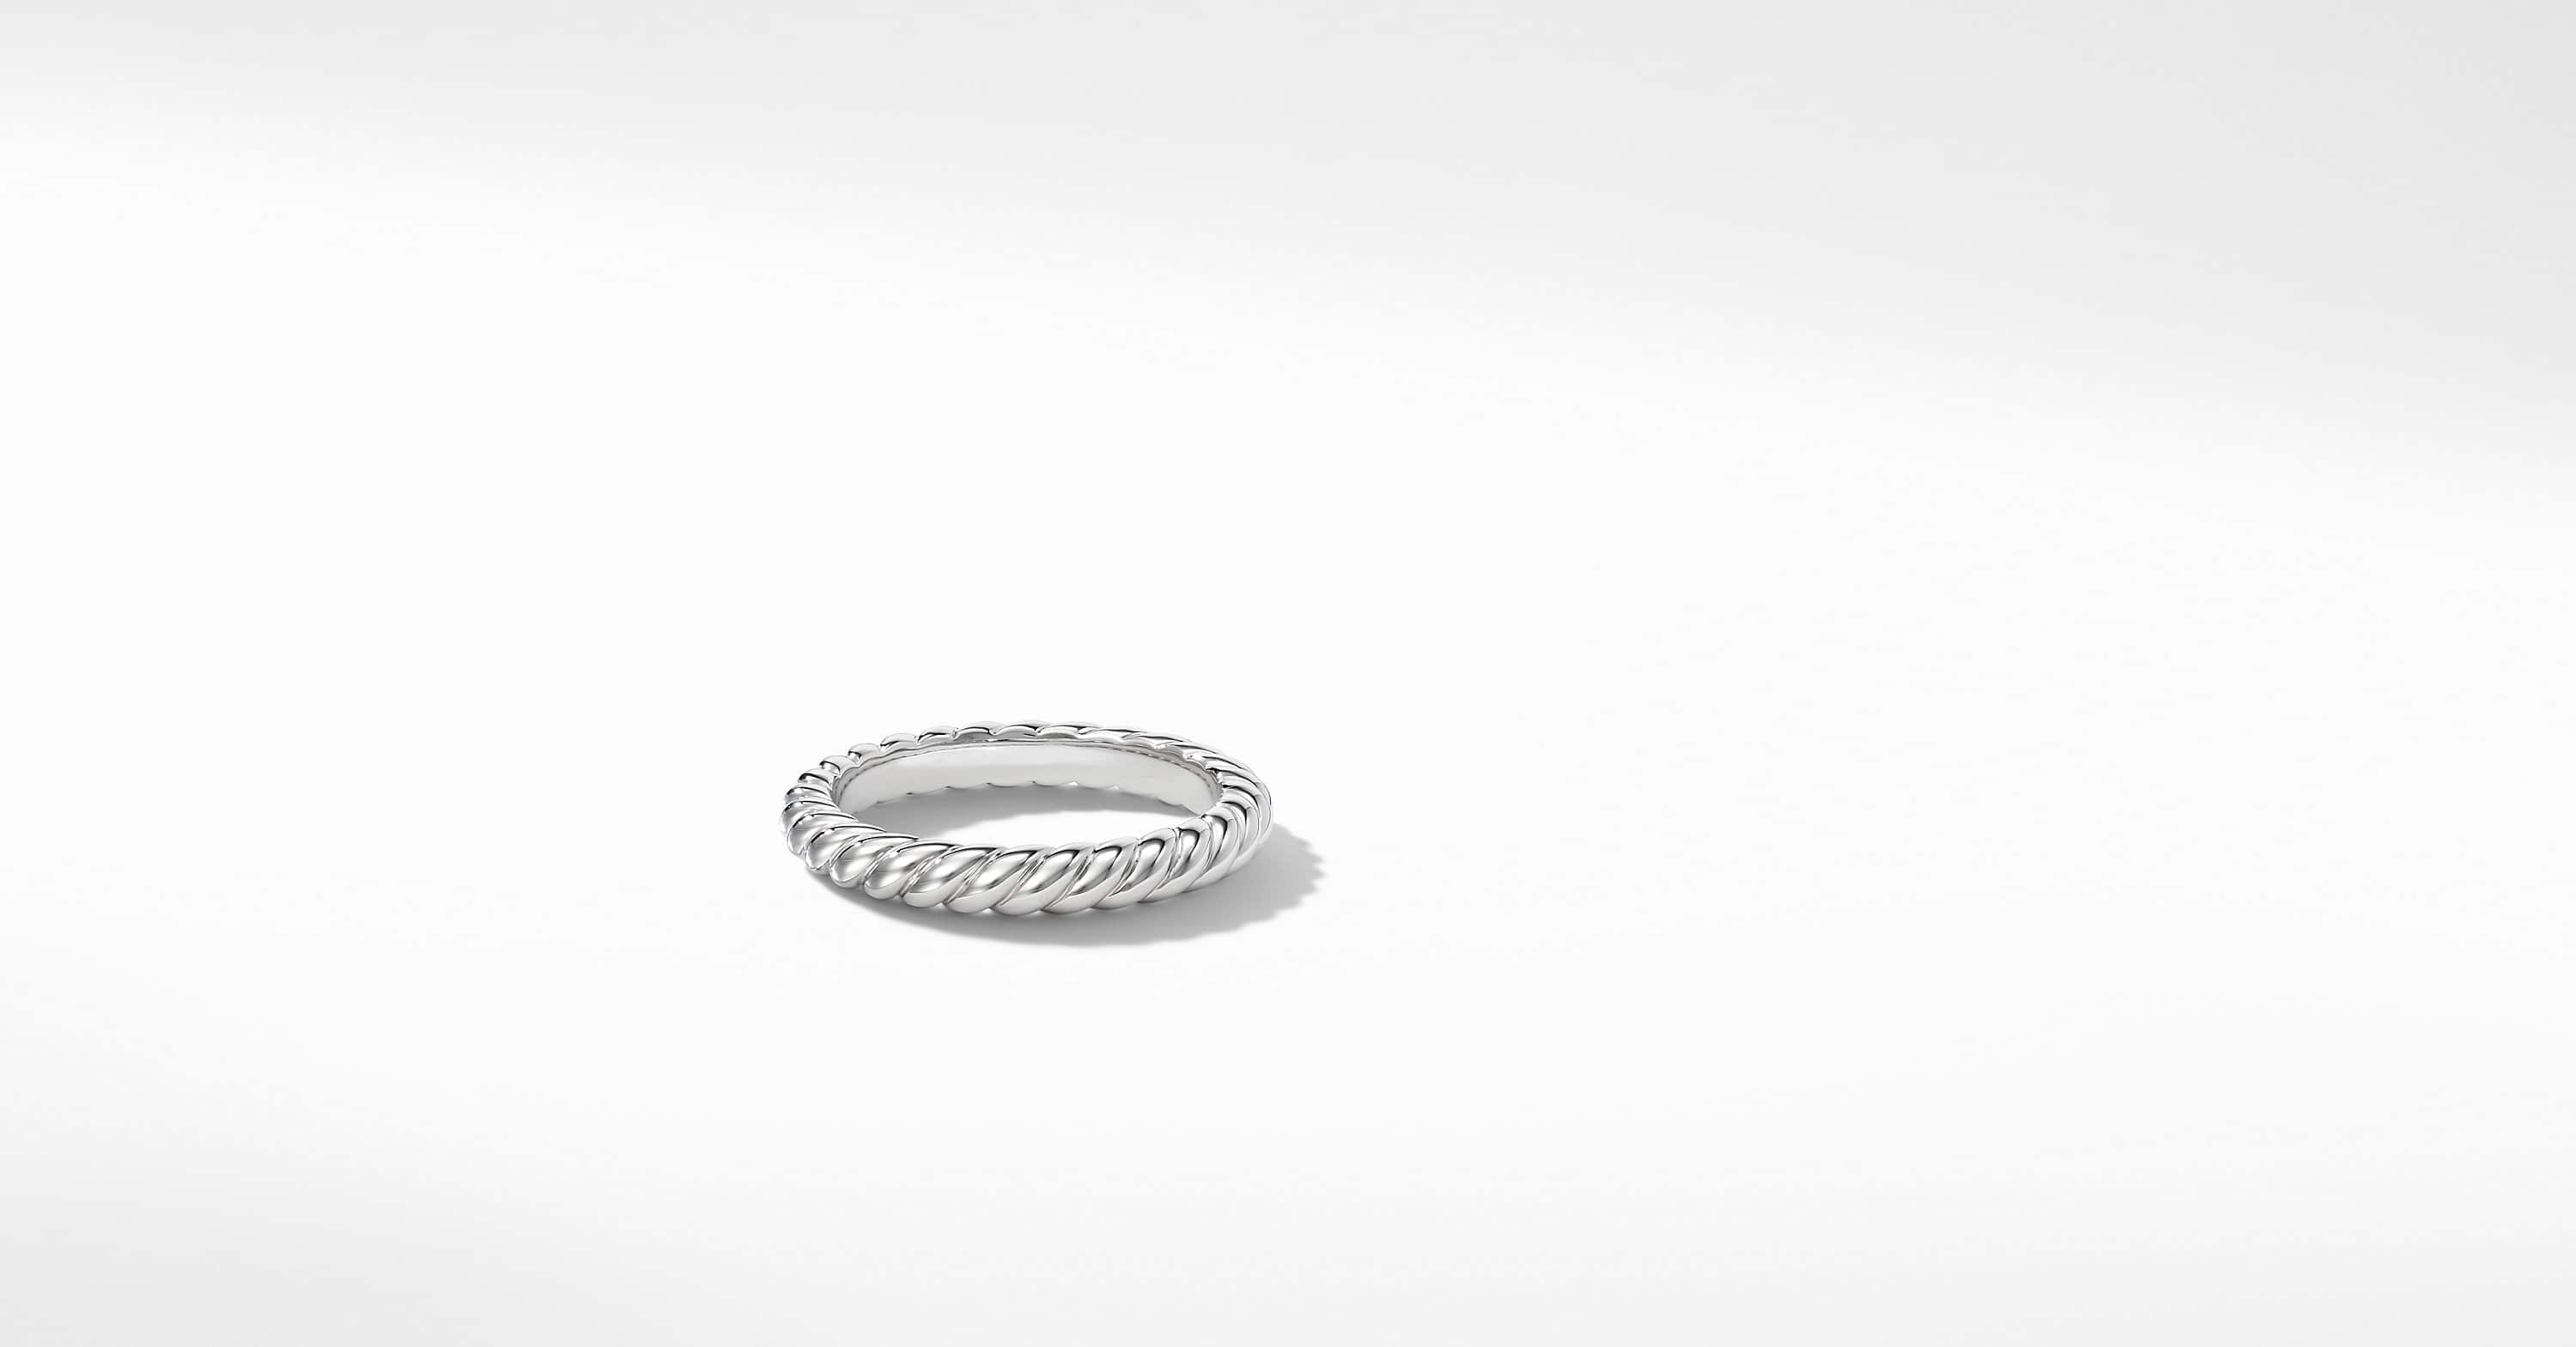 DY Unity Cable Wedding Band in Platinum, 3mm